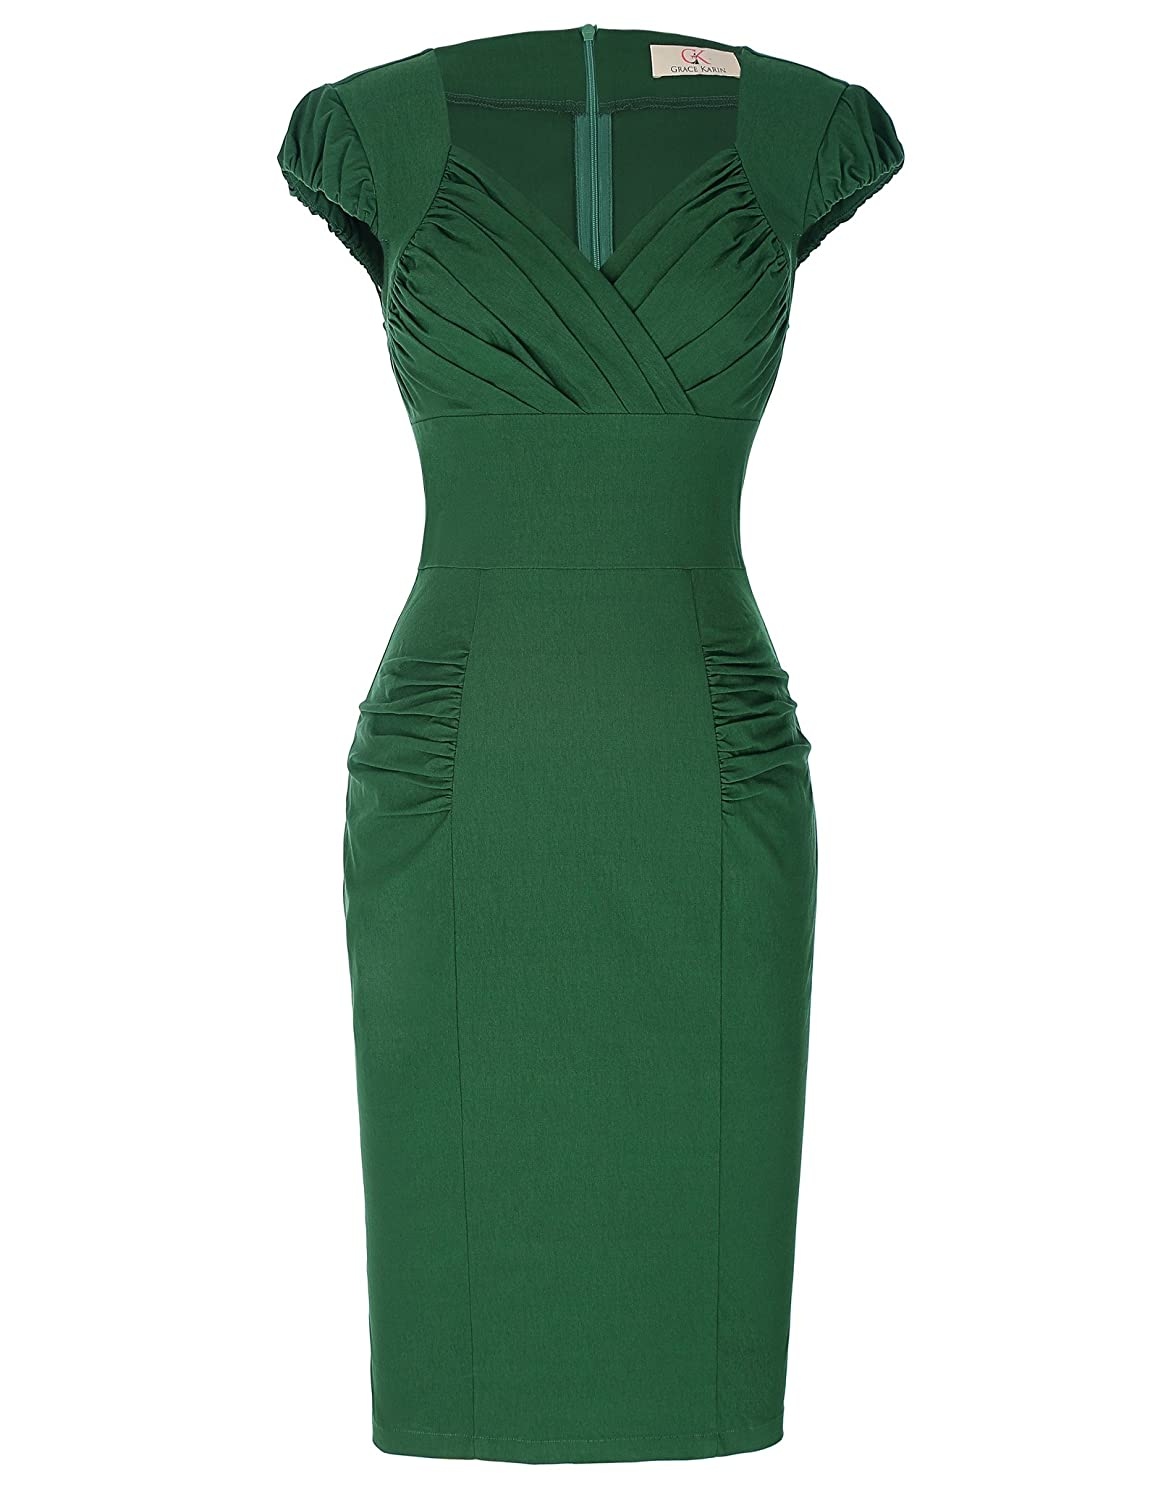 Agent Peggy Carter Costume, Dress, Hats GRACE KARIN Womens 50s Vintage Pencil Dress Cap Sleeve Wiggle Dress CL7597 $28.99 AT vintagedancer.com